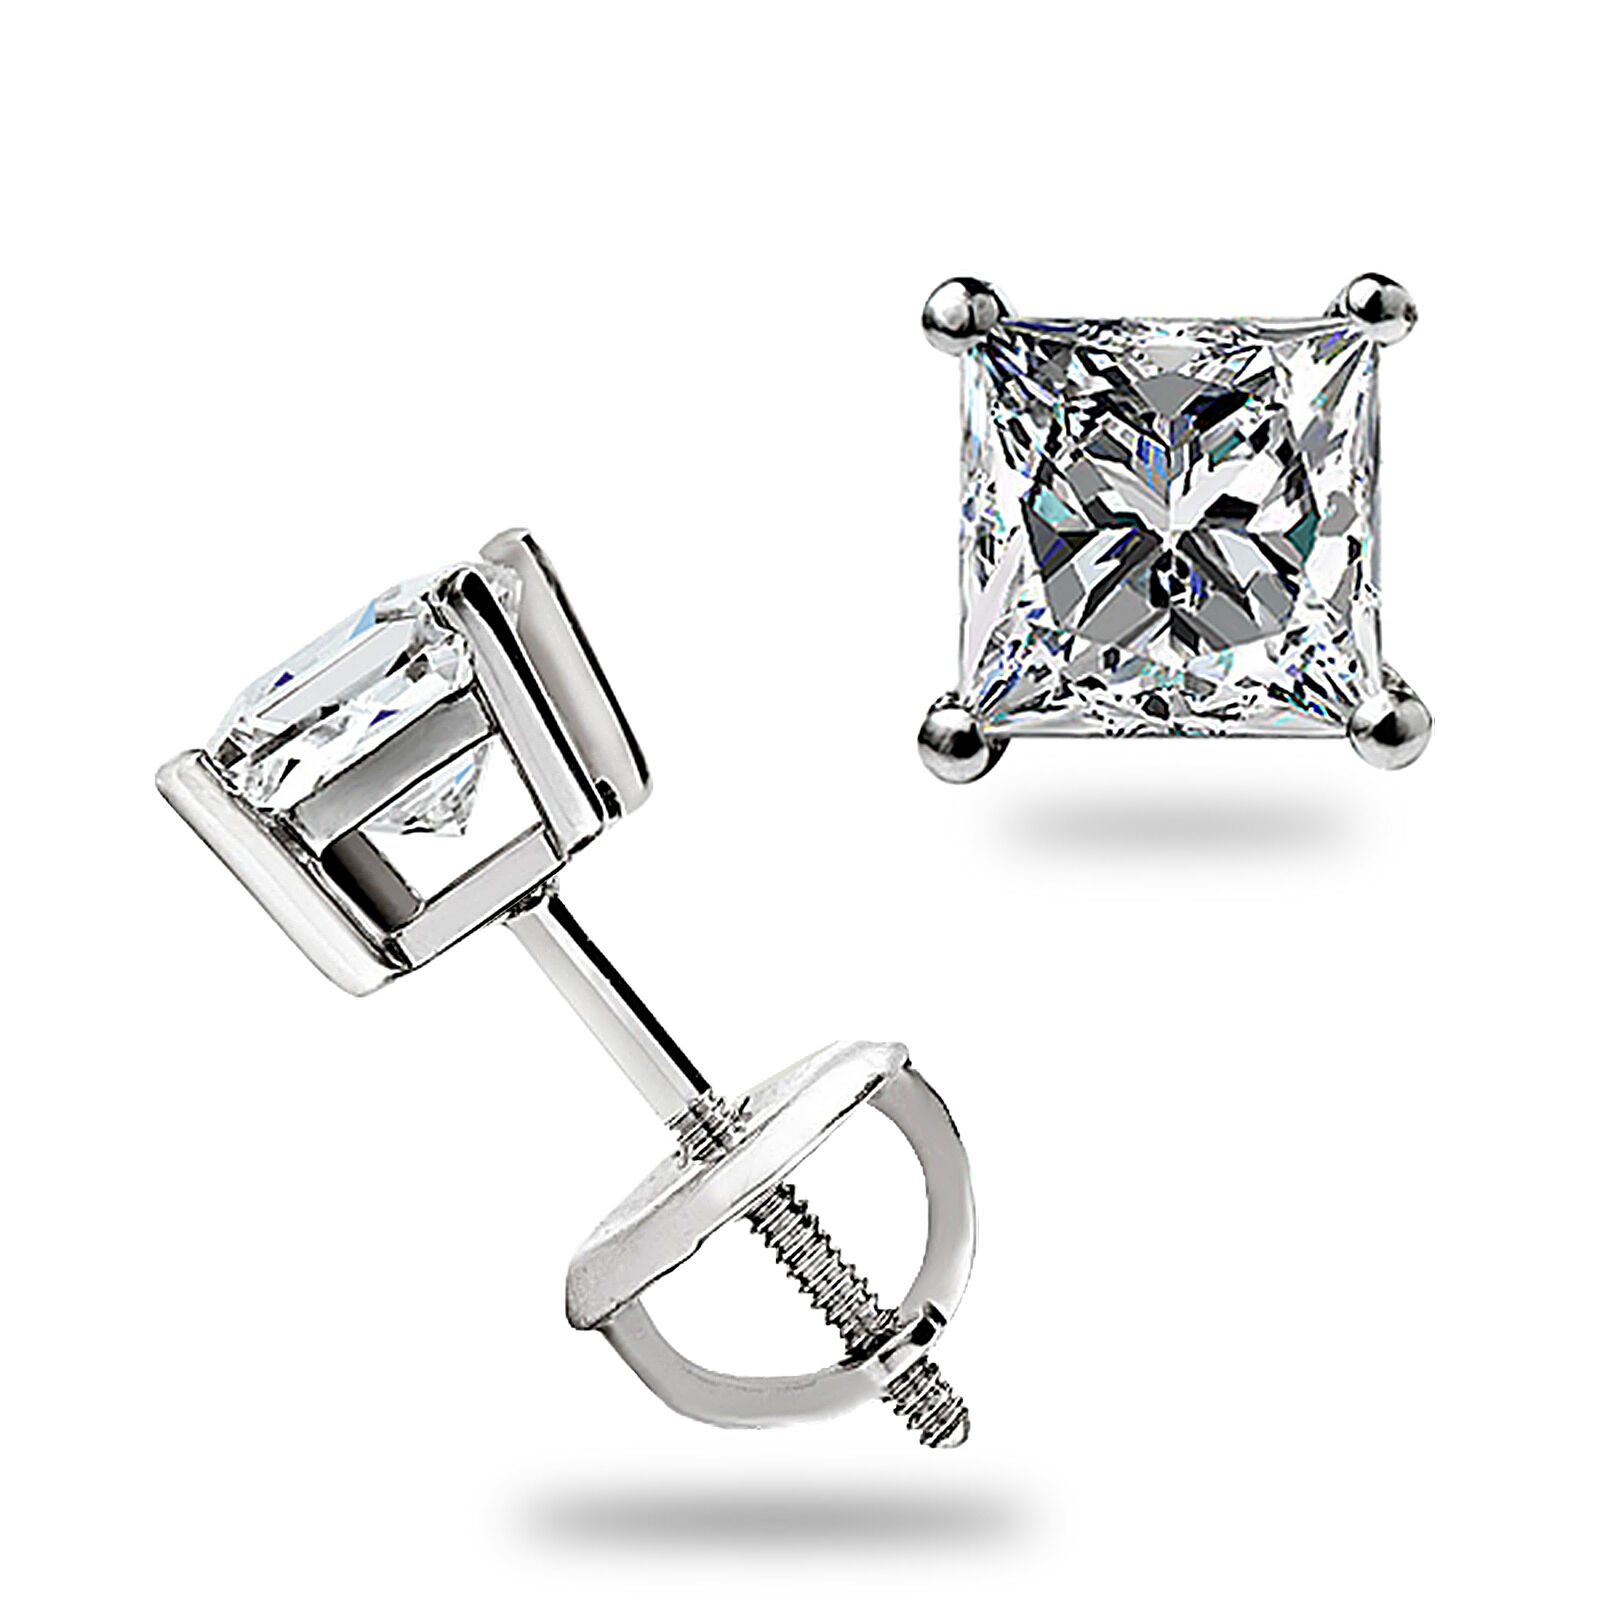 1 ct princess cut earrings 1 10 ct princess cut solitaire lab stud earrings solid 14k 3537